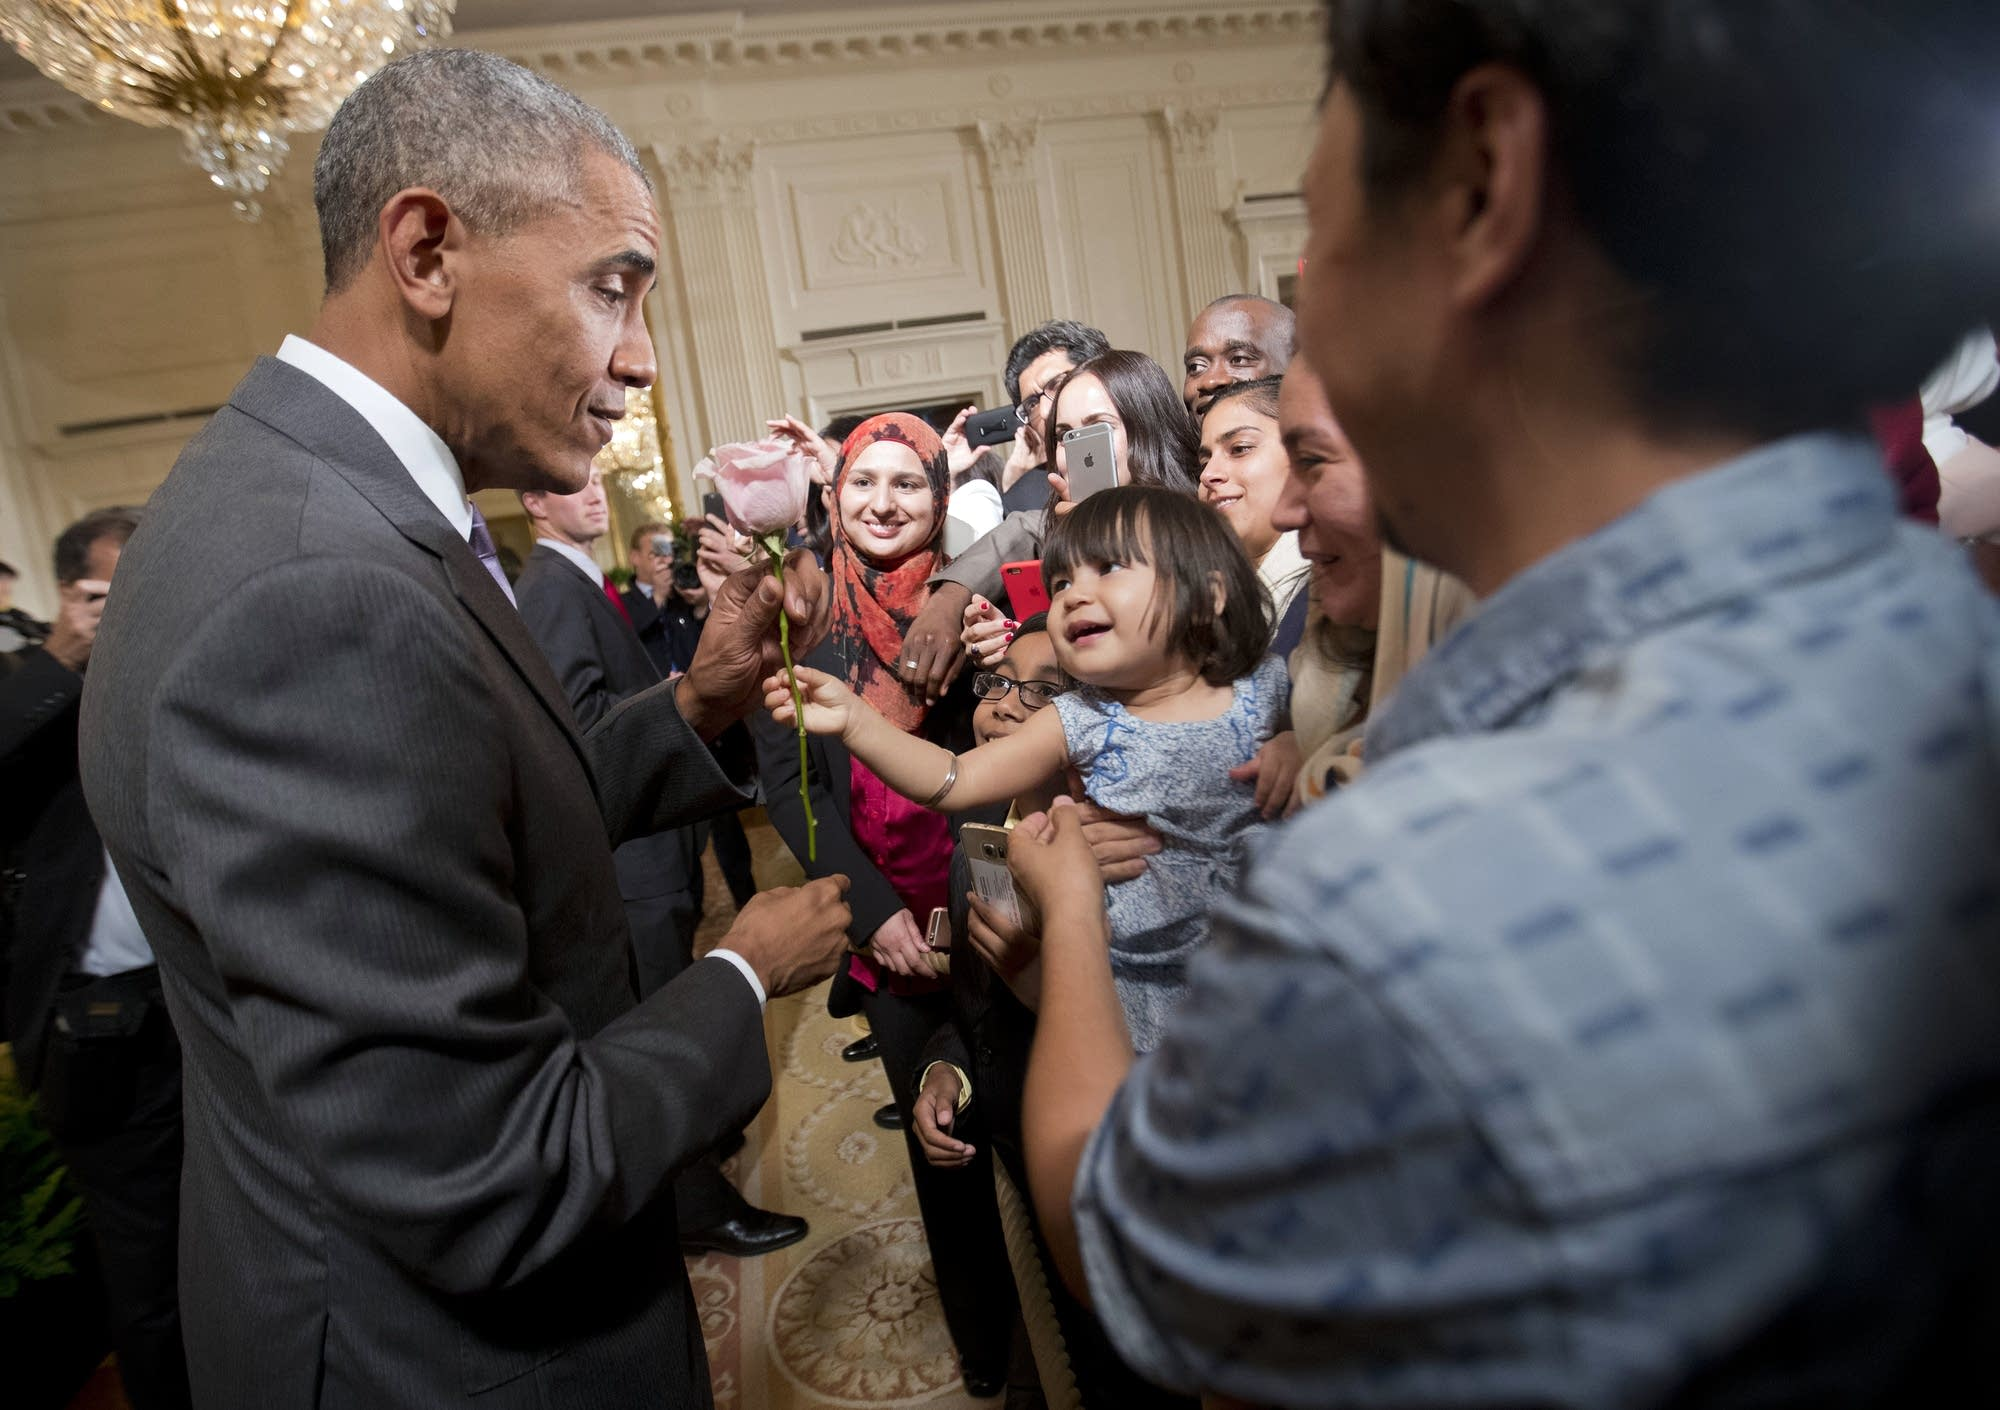 First white house eid celebration draws some minnesota applause president barack obama is given a rose kristyandbryce Images